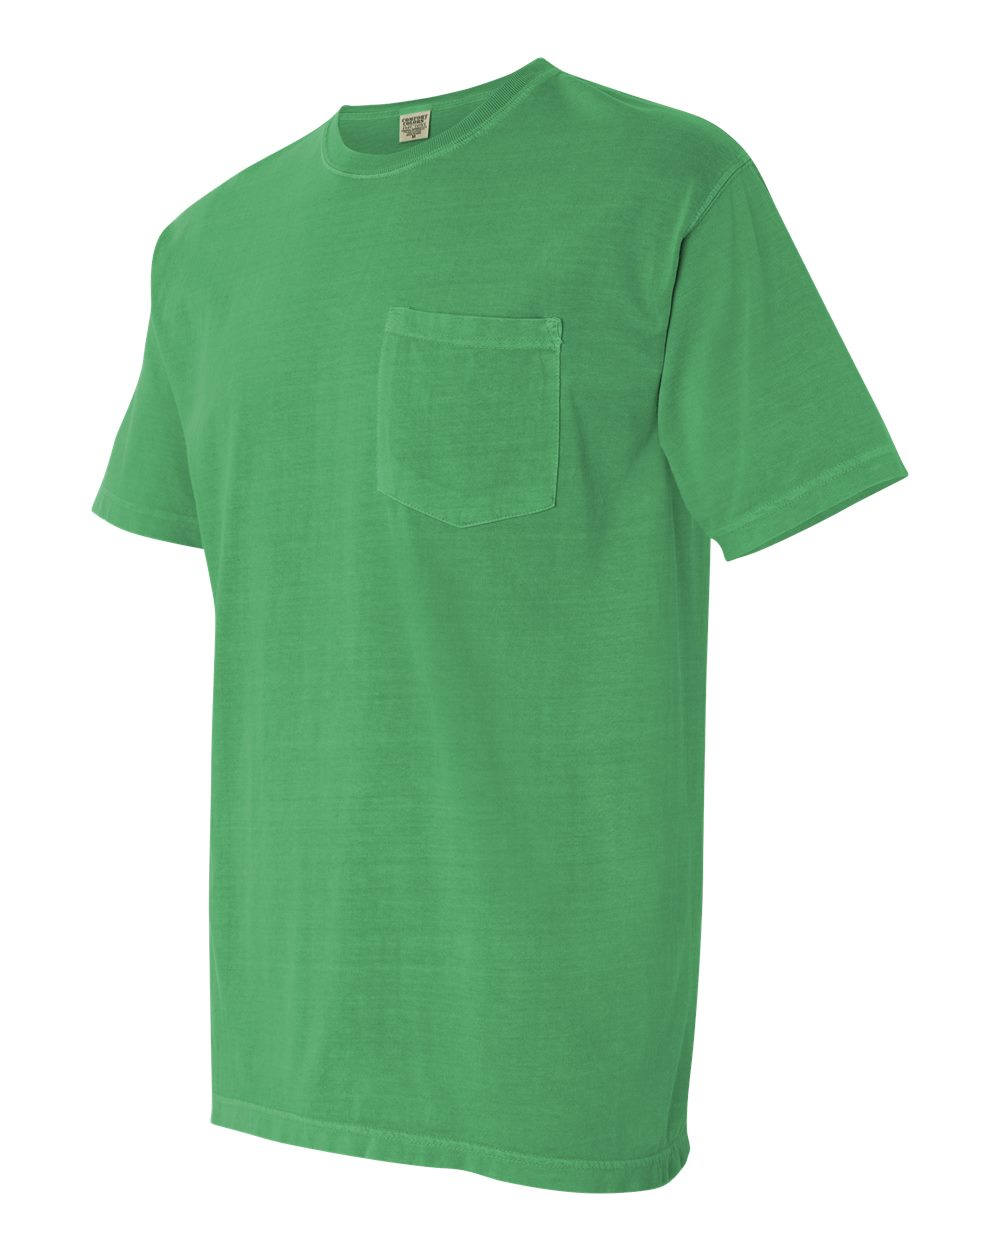 Comfort-Colors-Men-039-s-6-1-oz-Garment-Dyed-Pocket-T-Shirt-6030CC-S-3XL thumbnail 84